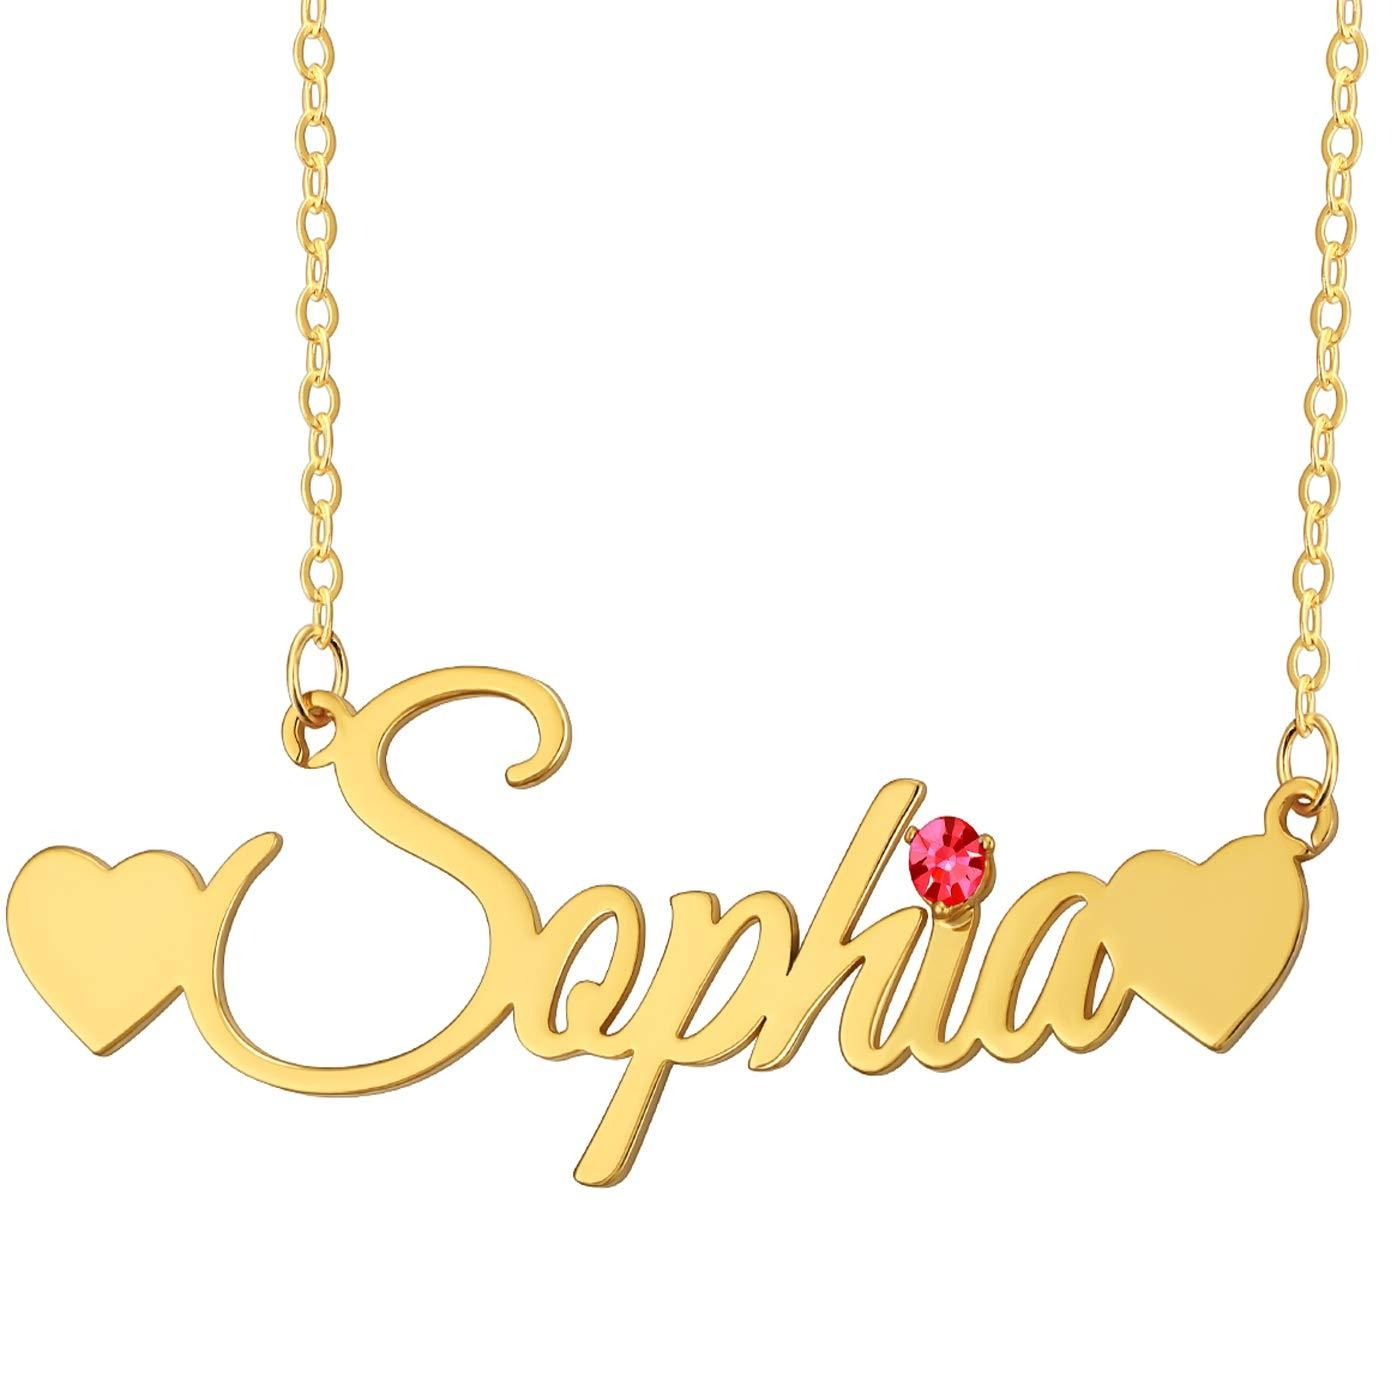 18K Gold Plated Personalized Double Heart Name with Birthstone Necklace